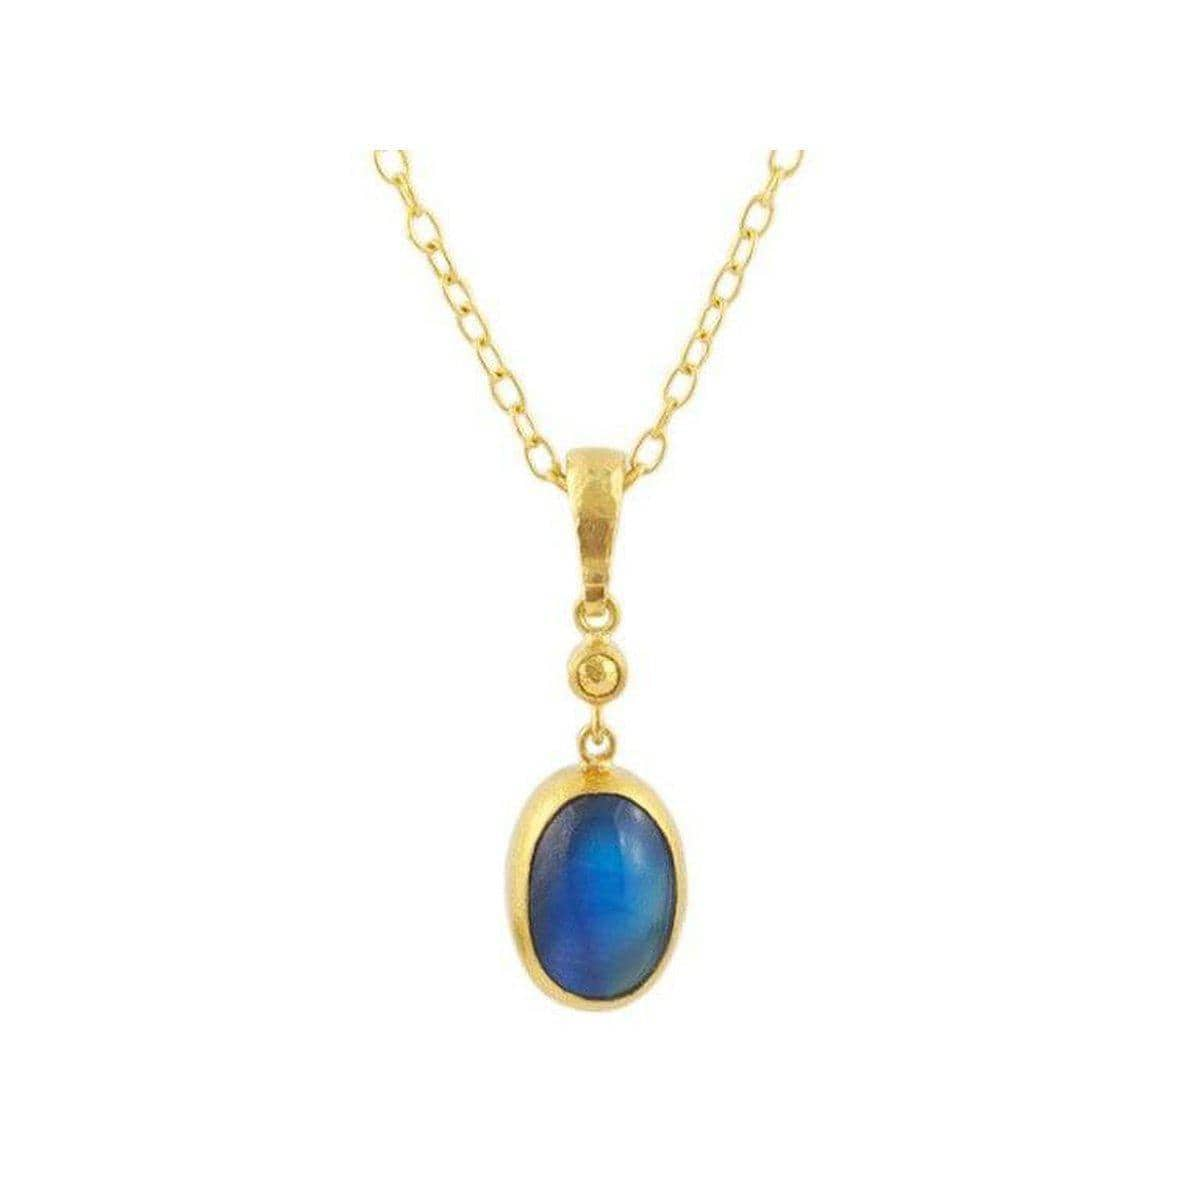 Amulet Hue 24K Gold Blue Moonstone Necklace - CHN-AH-BMNS1410-V-GURHAN-Renee Taylor Gallery